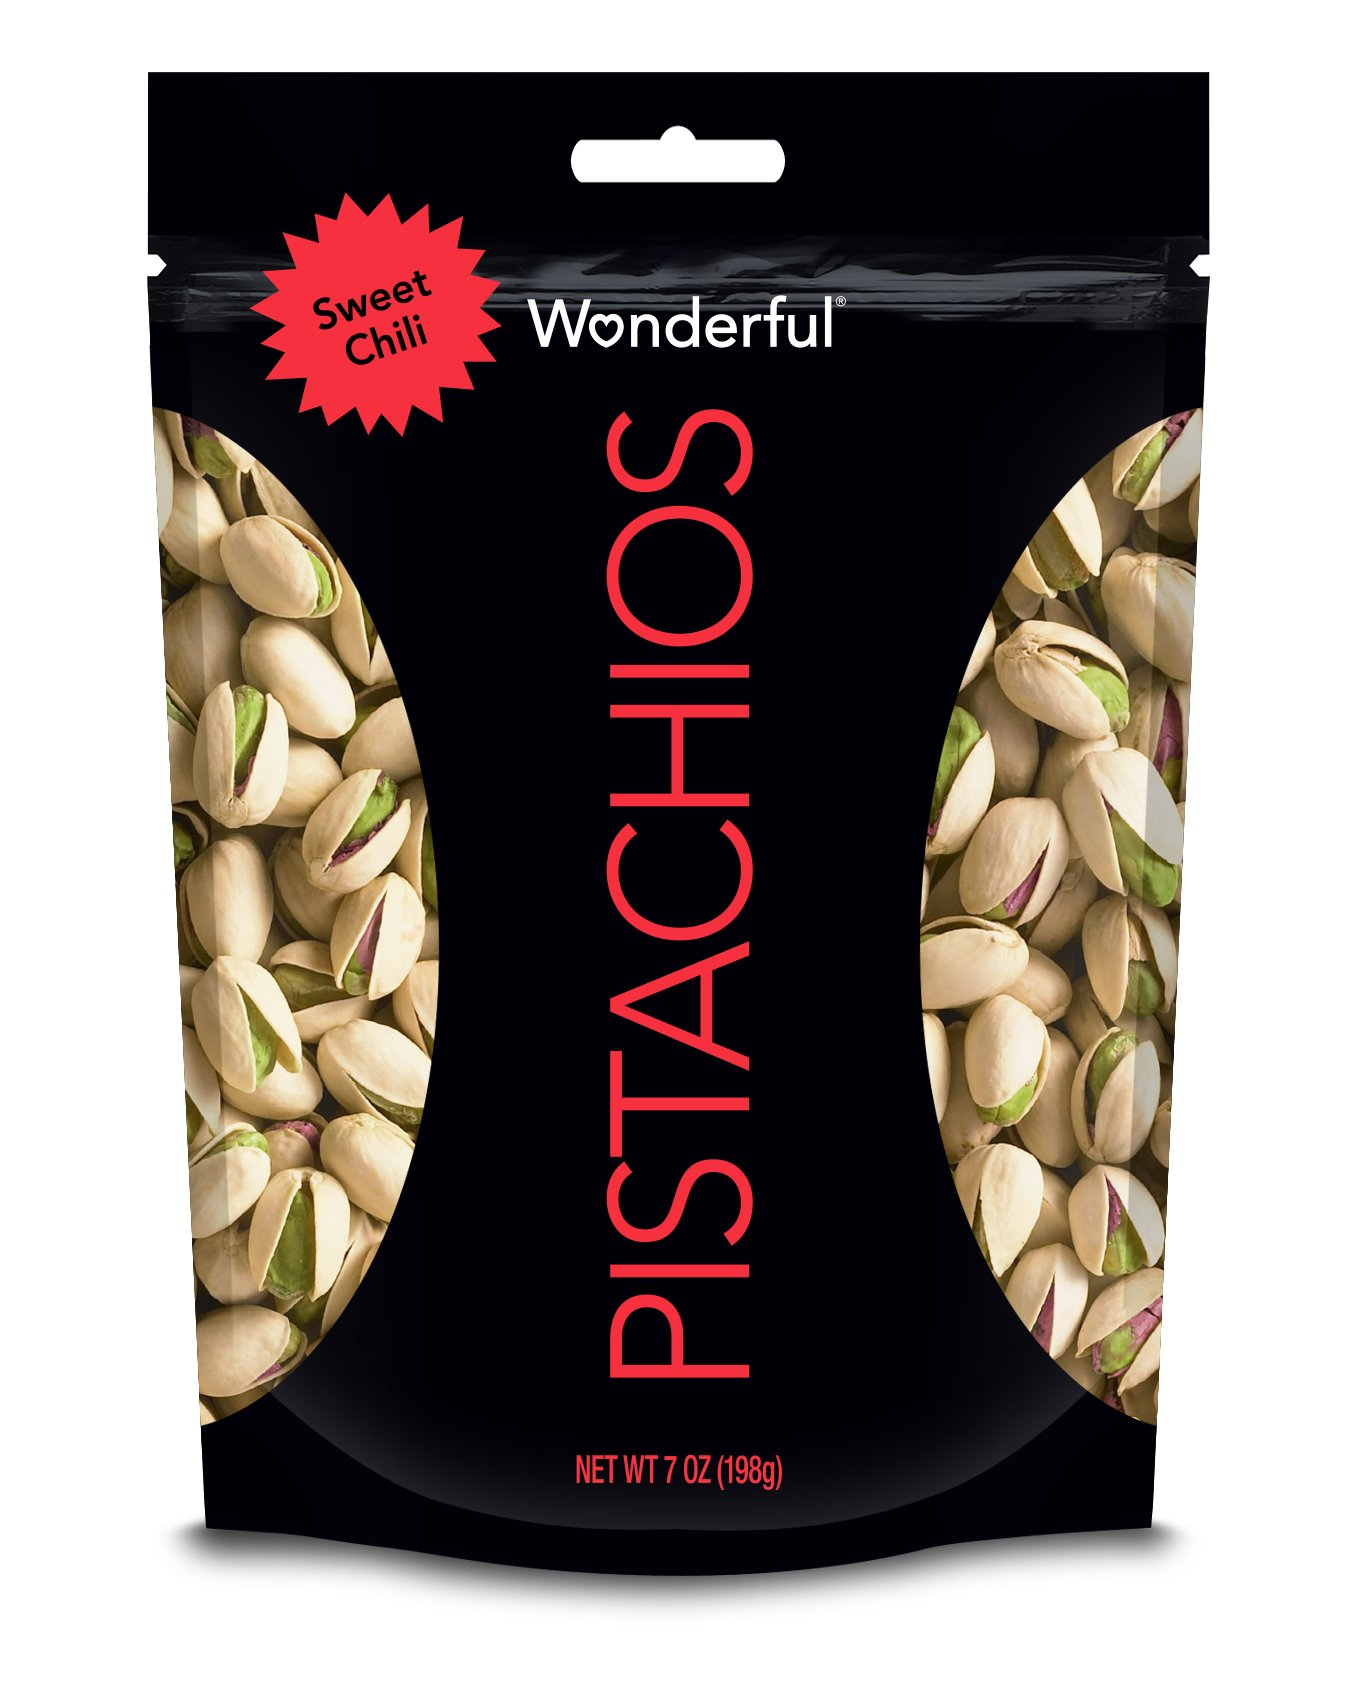 Wonderful Pistachios, Sweet Chili Flavored, 7 Ounce Resealable Pouch by Wonderful Pistachios & Almonds